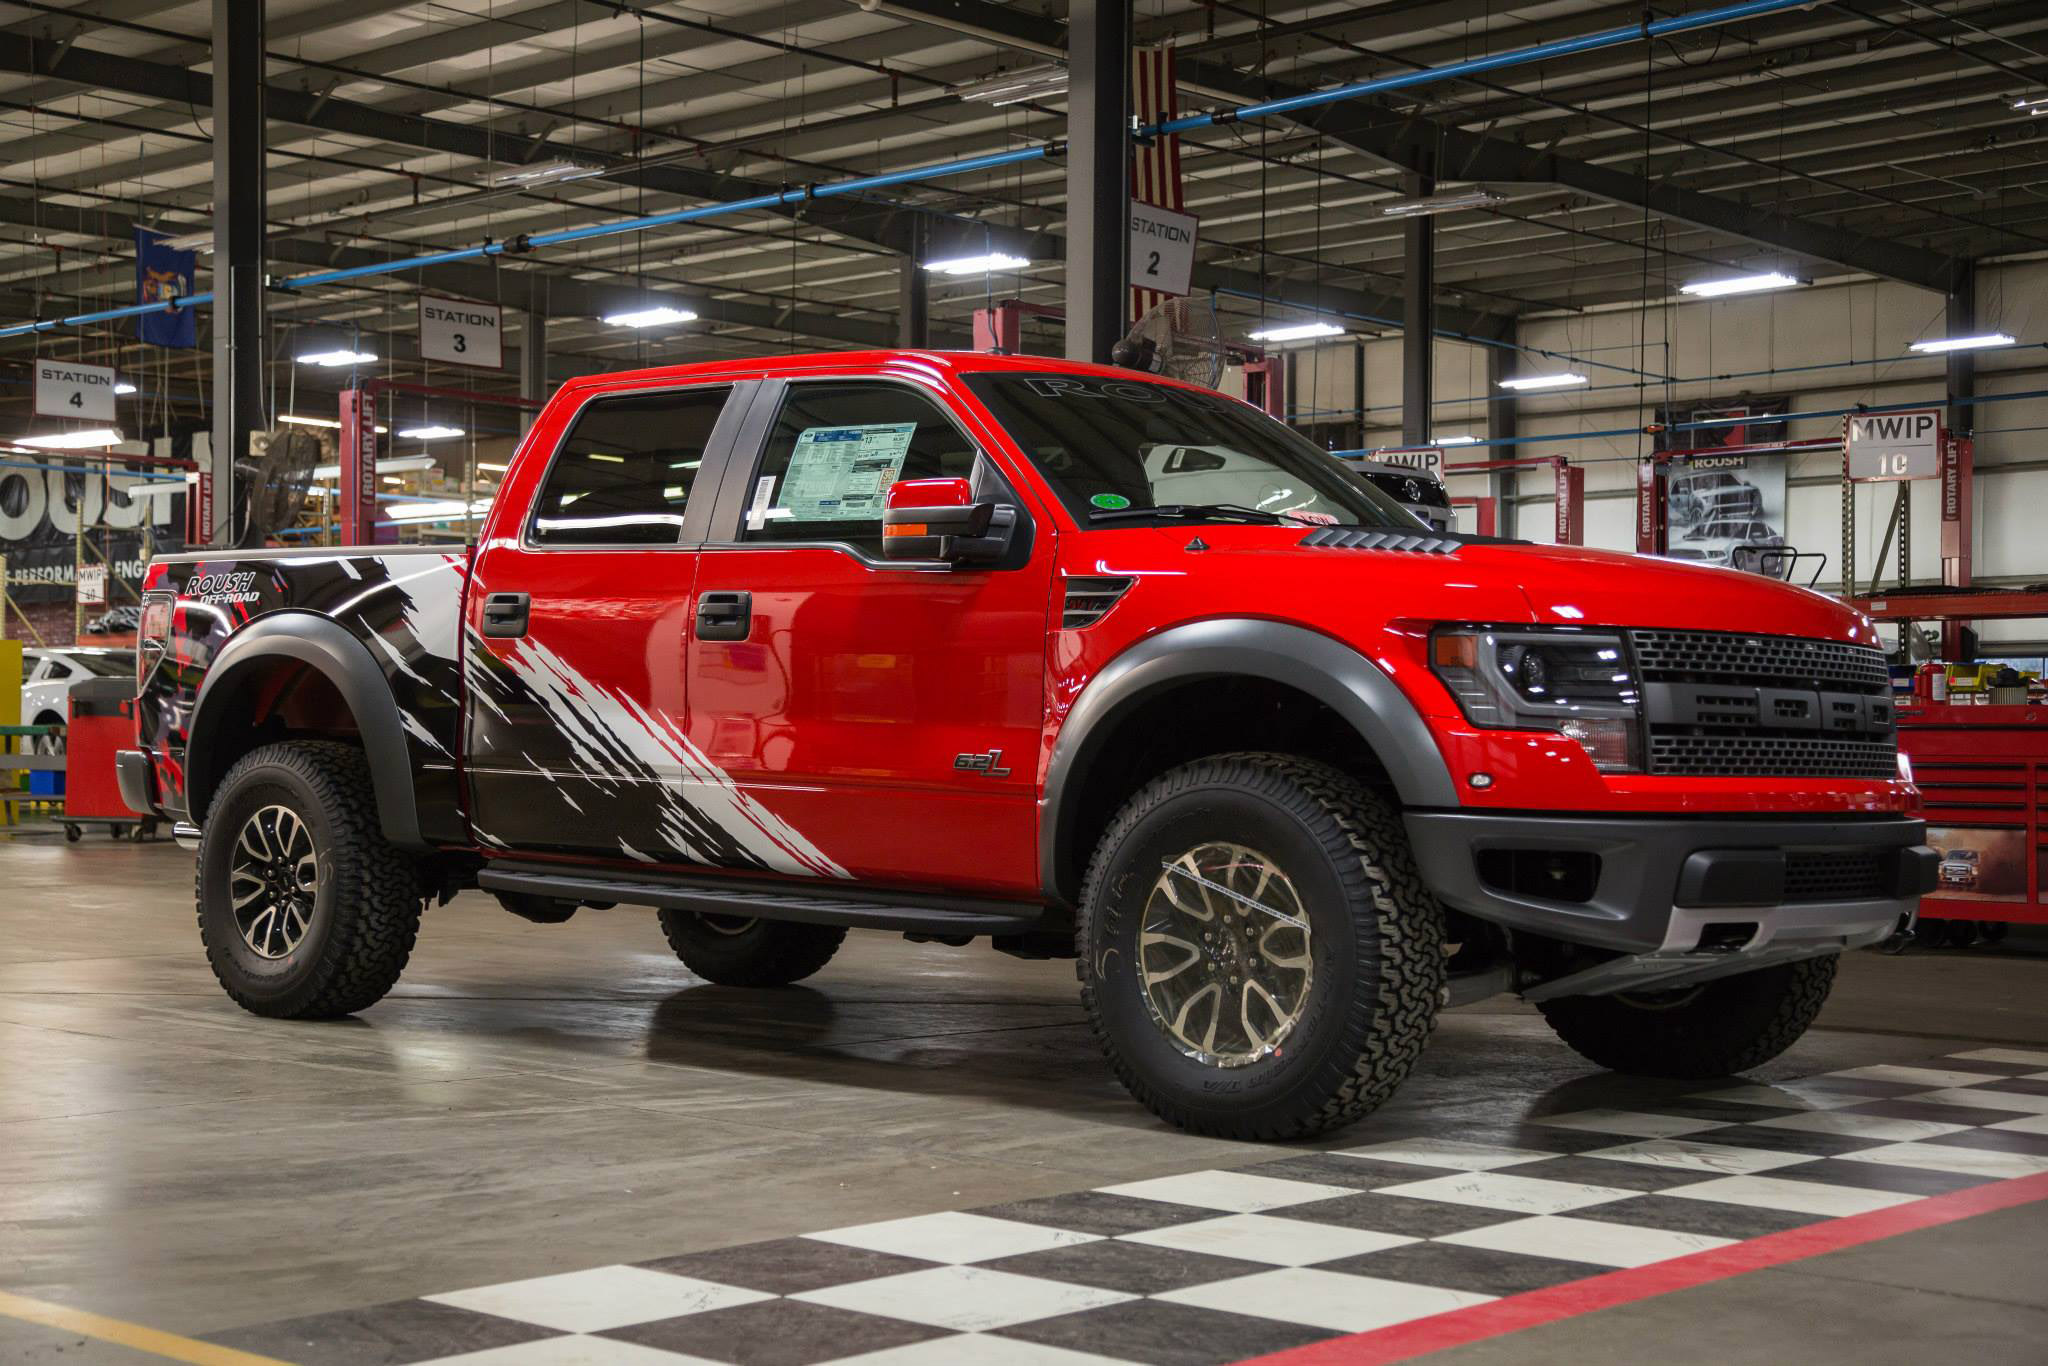 2014-roush-off-road-ford-f-150-svt-raptor-02.jpg